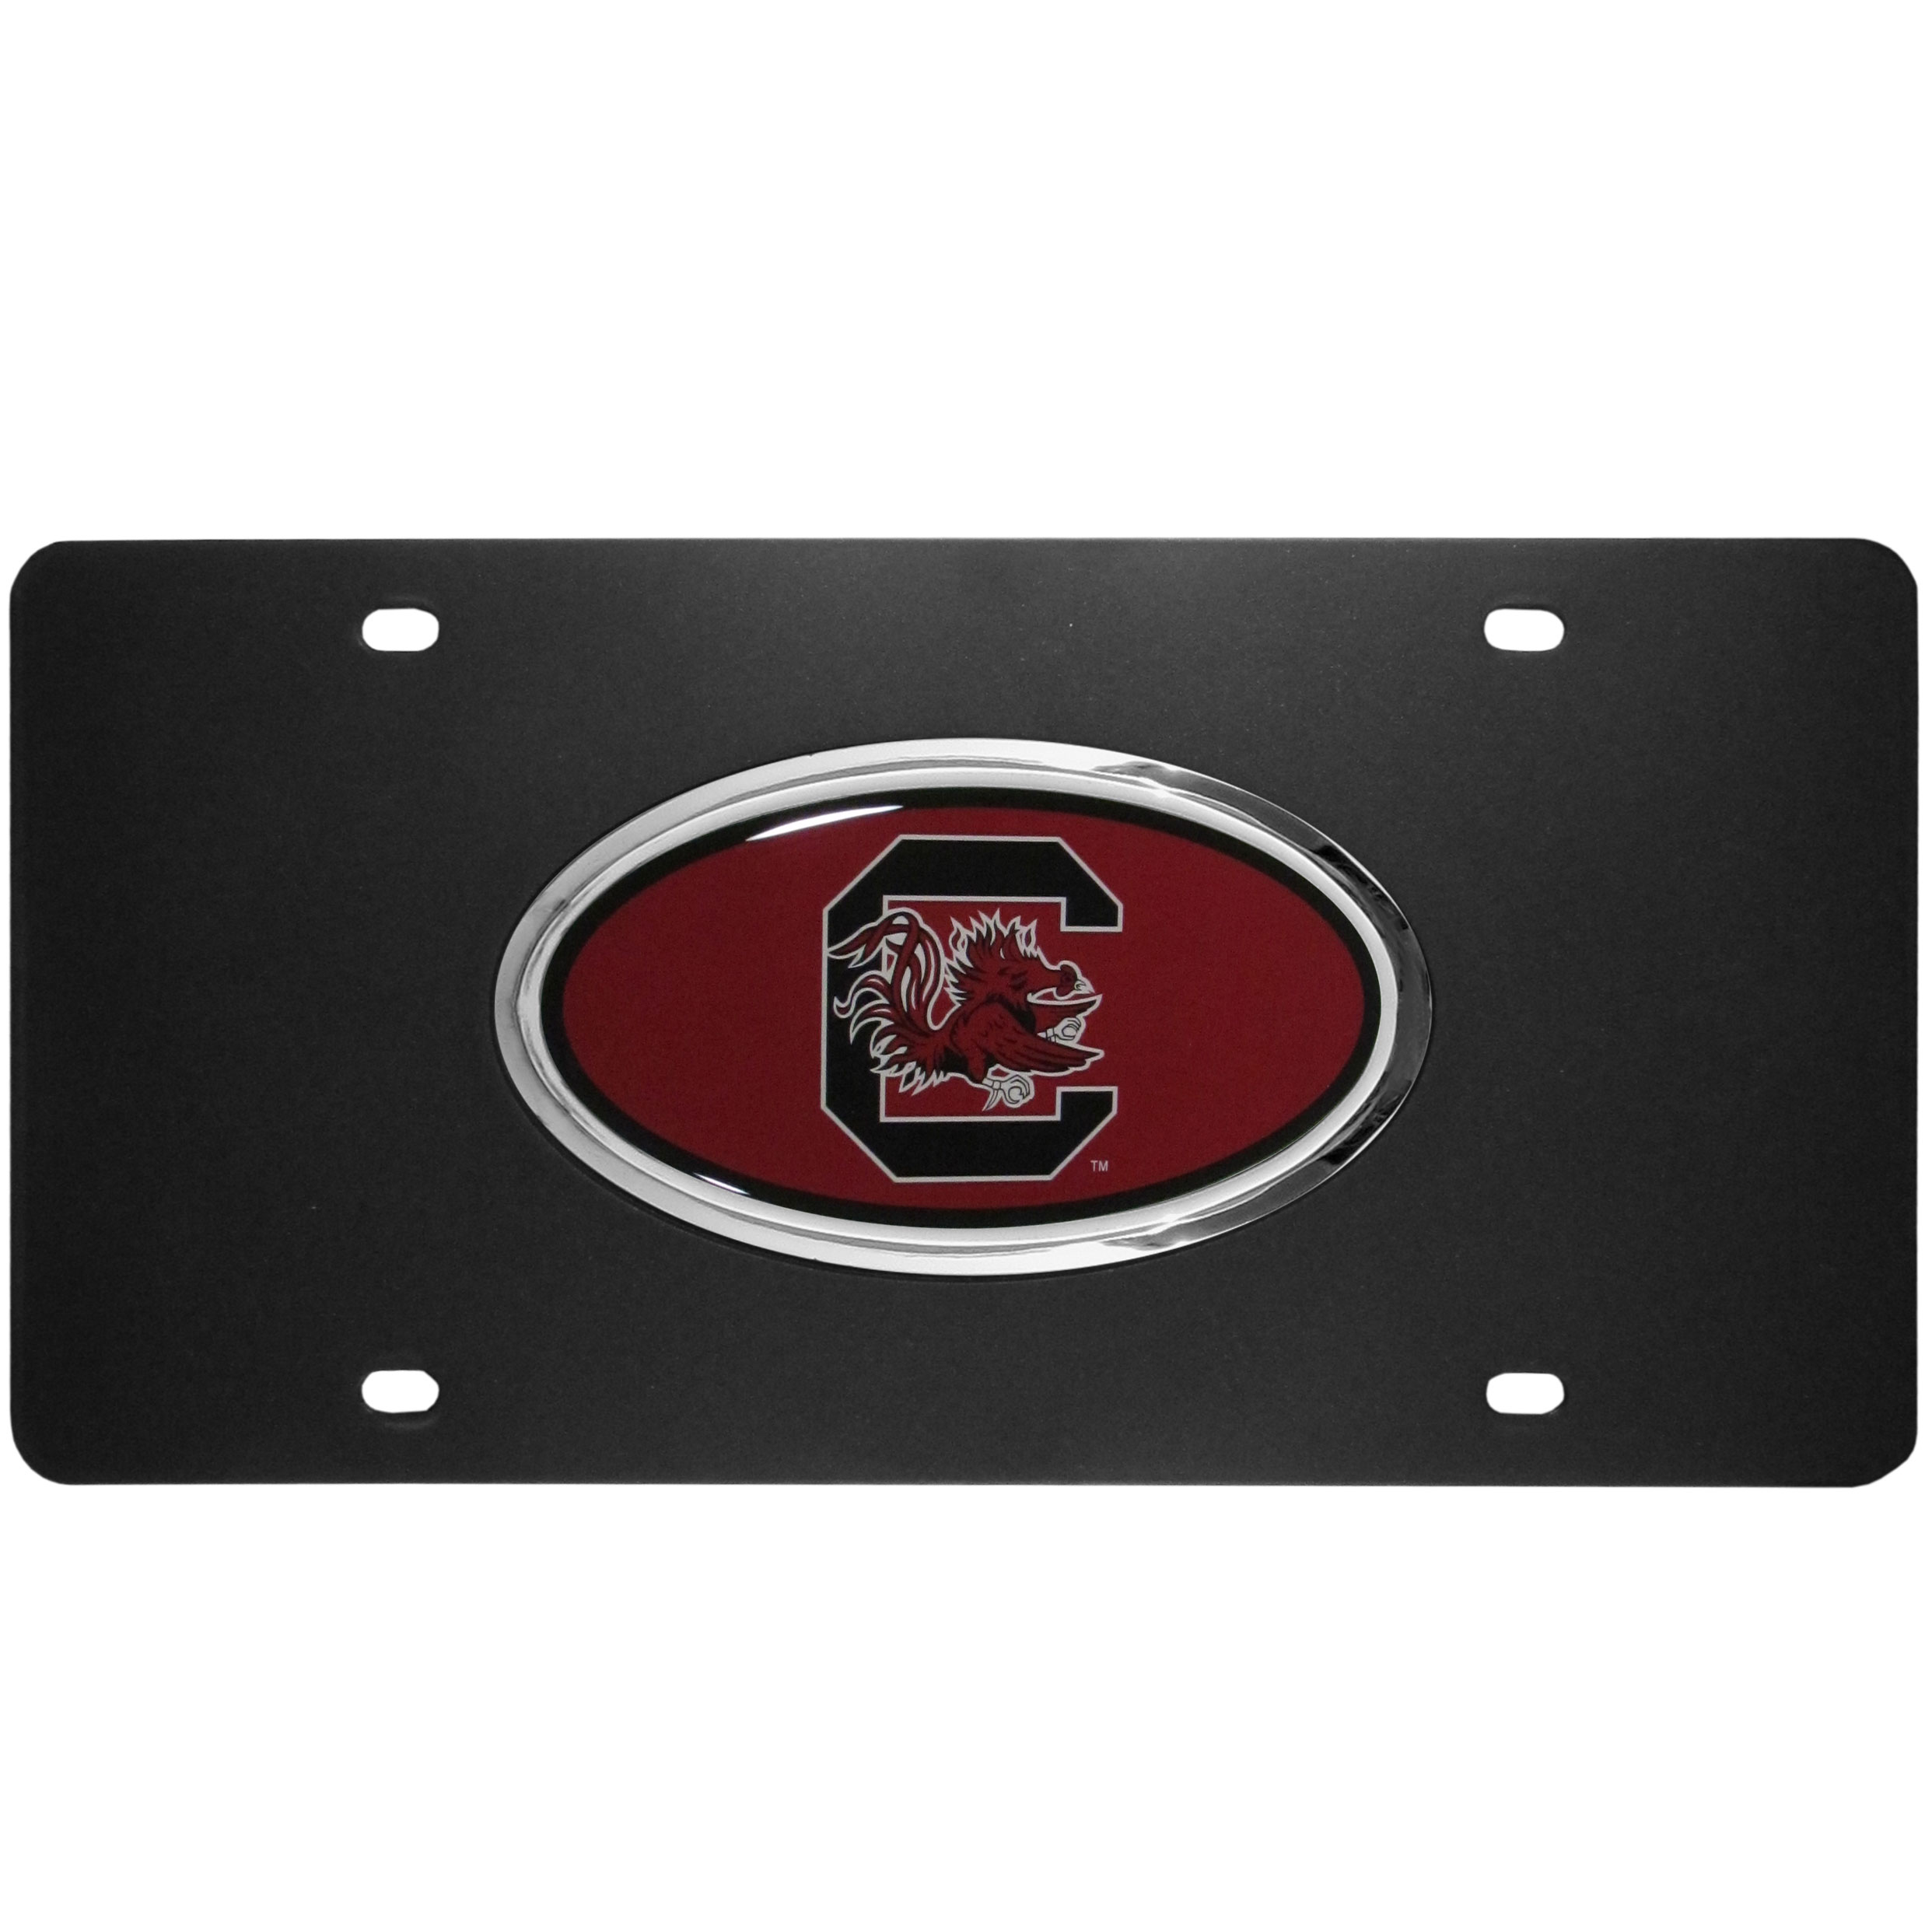 S. Carolina Gamecocks Acrylic License Plate - Our S. Carolina Gamecocks acrylic license plate is a step above the rest. It is made of thick, durable acrylic with a matte black finish and raised chrome saddle for the extra large team emblem.